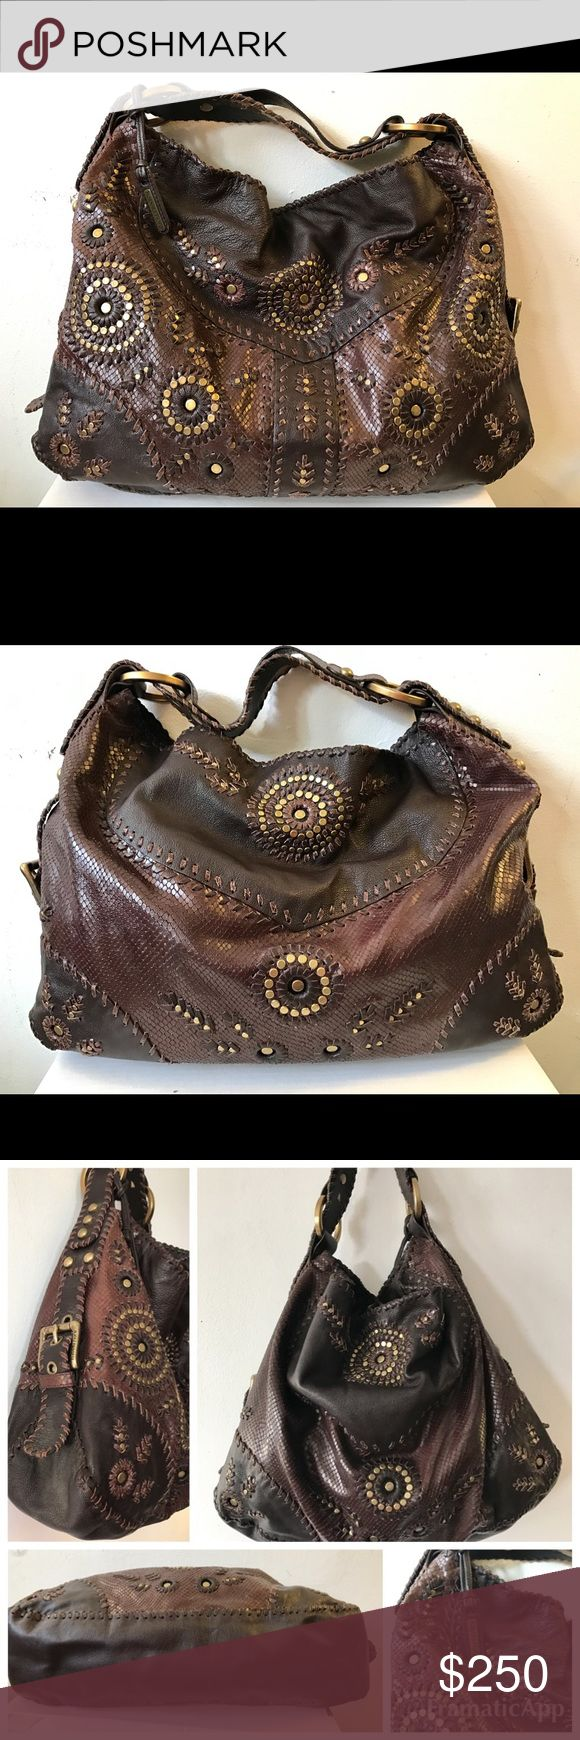 """Isabella Fiore Kool Whip Yvonne Studded Hobo Bag Isabella Fiore Kool Whip Yvonne Leather Studded Hobo Bag $645 retail. Pristine!  18""""L x 13""""H x 5""""W  From the 2006 collection, the Kool Whip bag is an Indian/Middle Eastern Hobo w/modern flair! large size holds your everyday essentials. The wide strap sits comfortably. gold studded circles & woven leather. Snake leather. large brass """"O"""" rings attach the strap to the bag. magnetic snap closure, lined in brown twill. strap drop 9"""" Isabella Fiore…"""